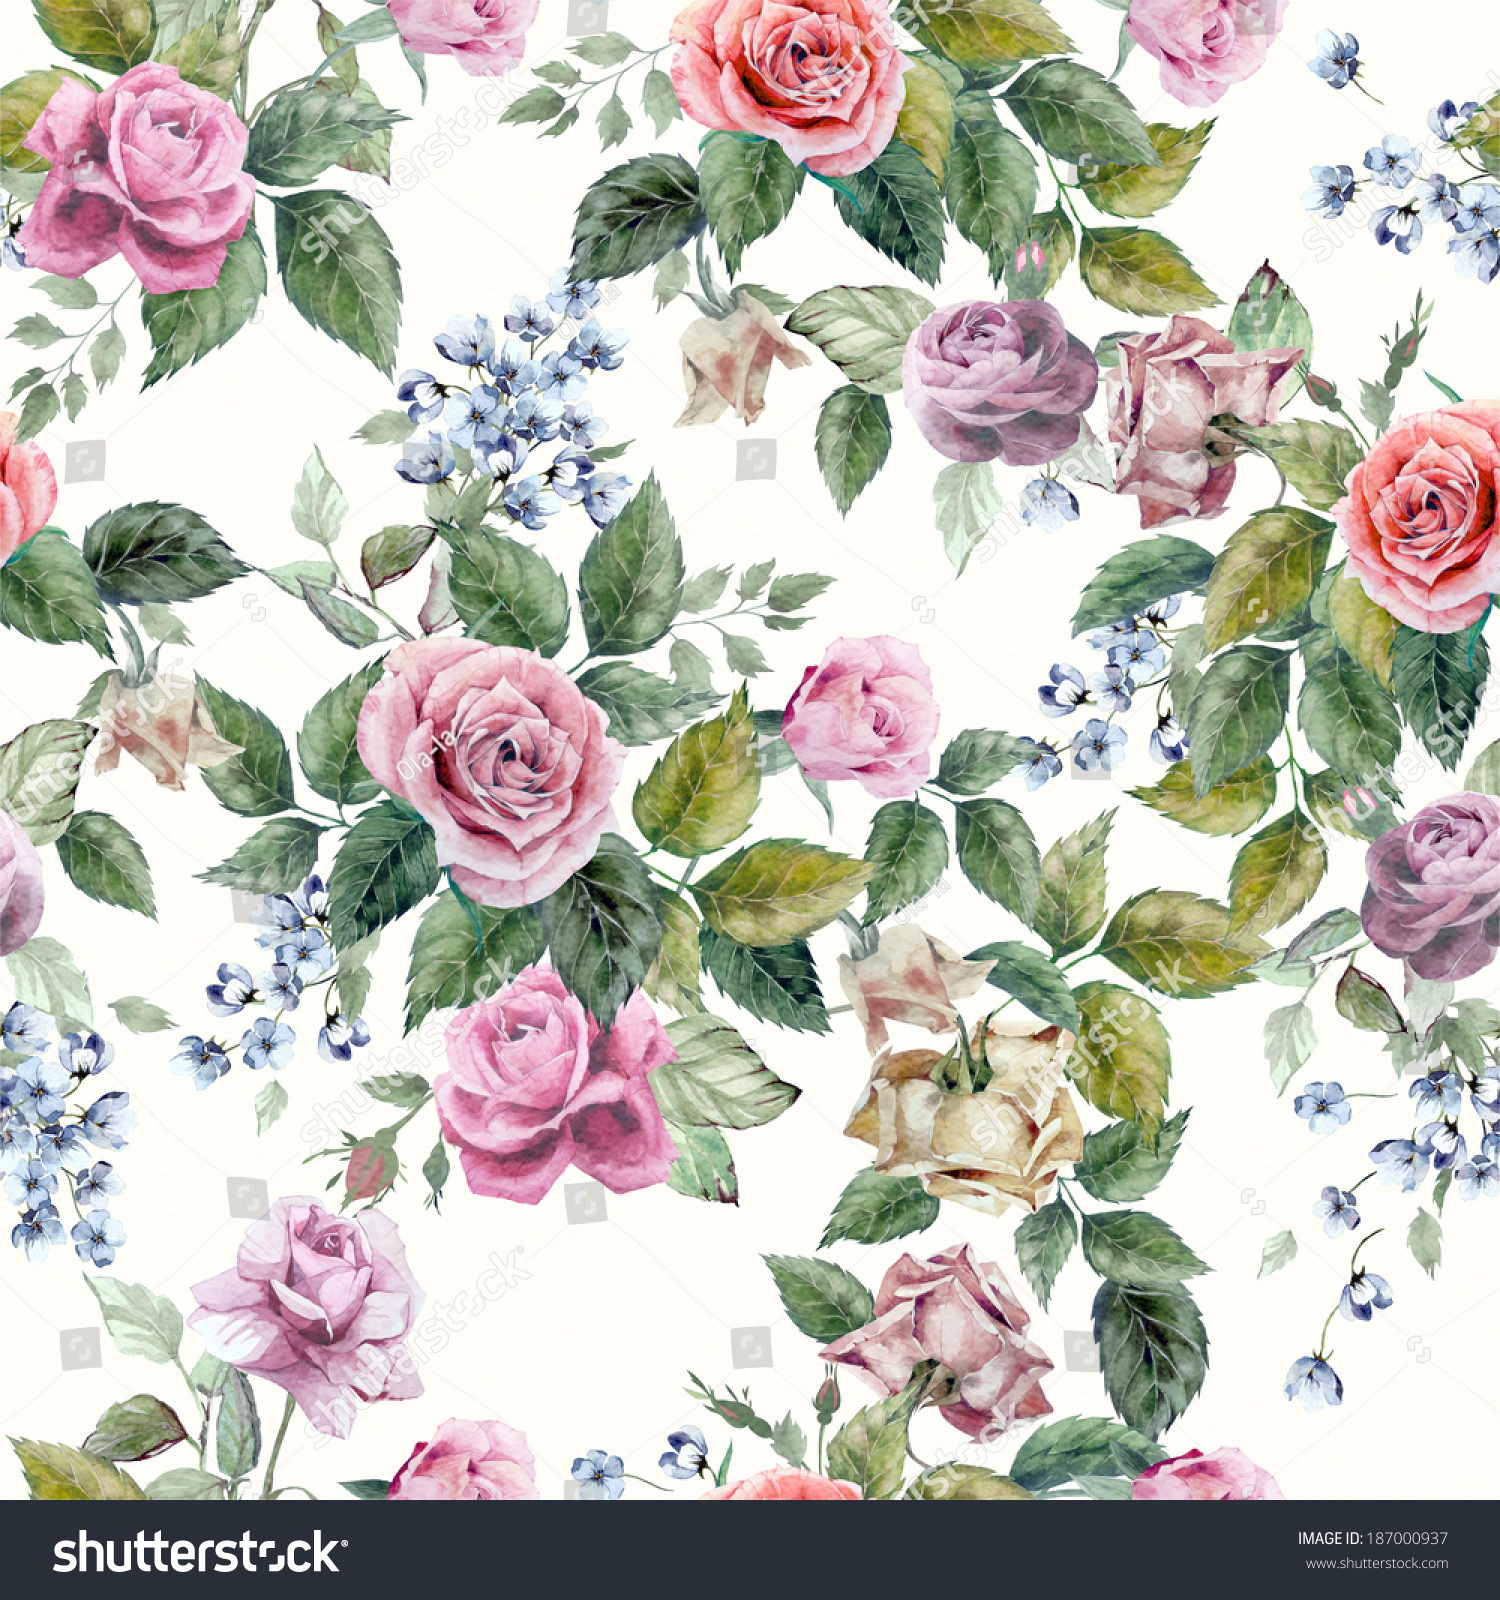 Seamless pink floral pattern - photo#43